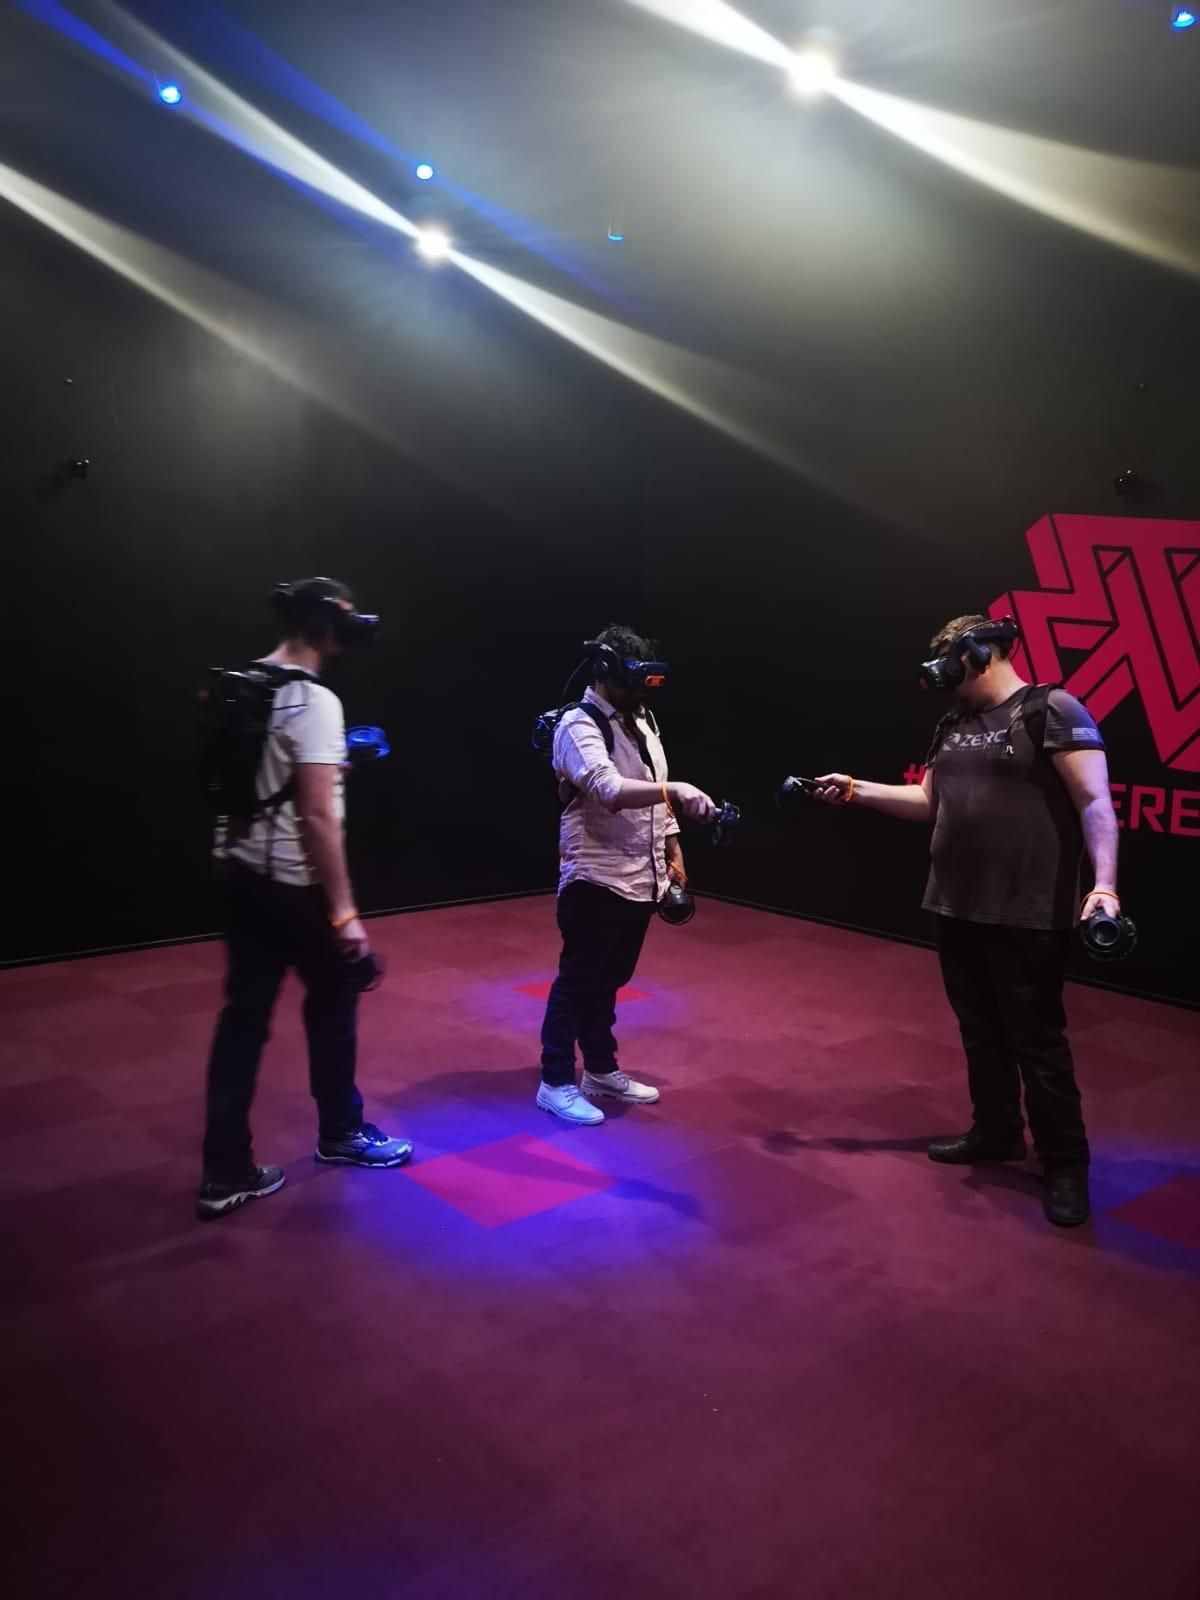 Autron VR can offer plenty that a regular escape room can't